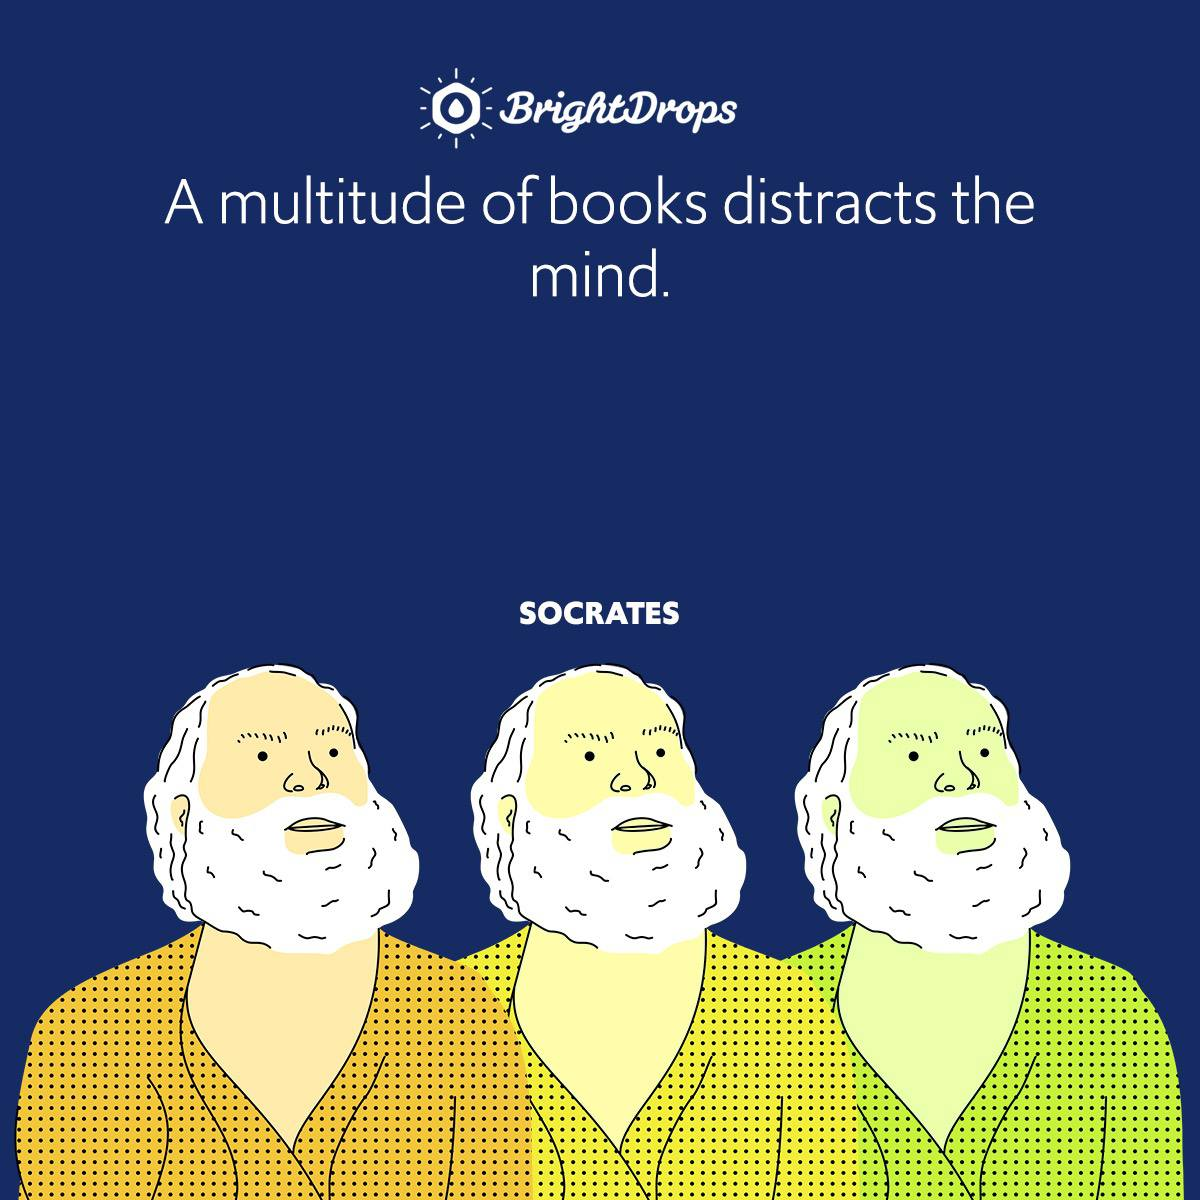 A multitude of books distracts the mind.